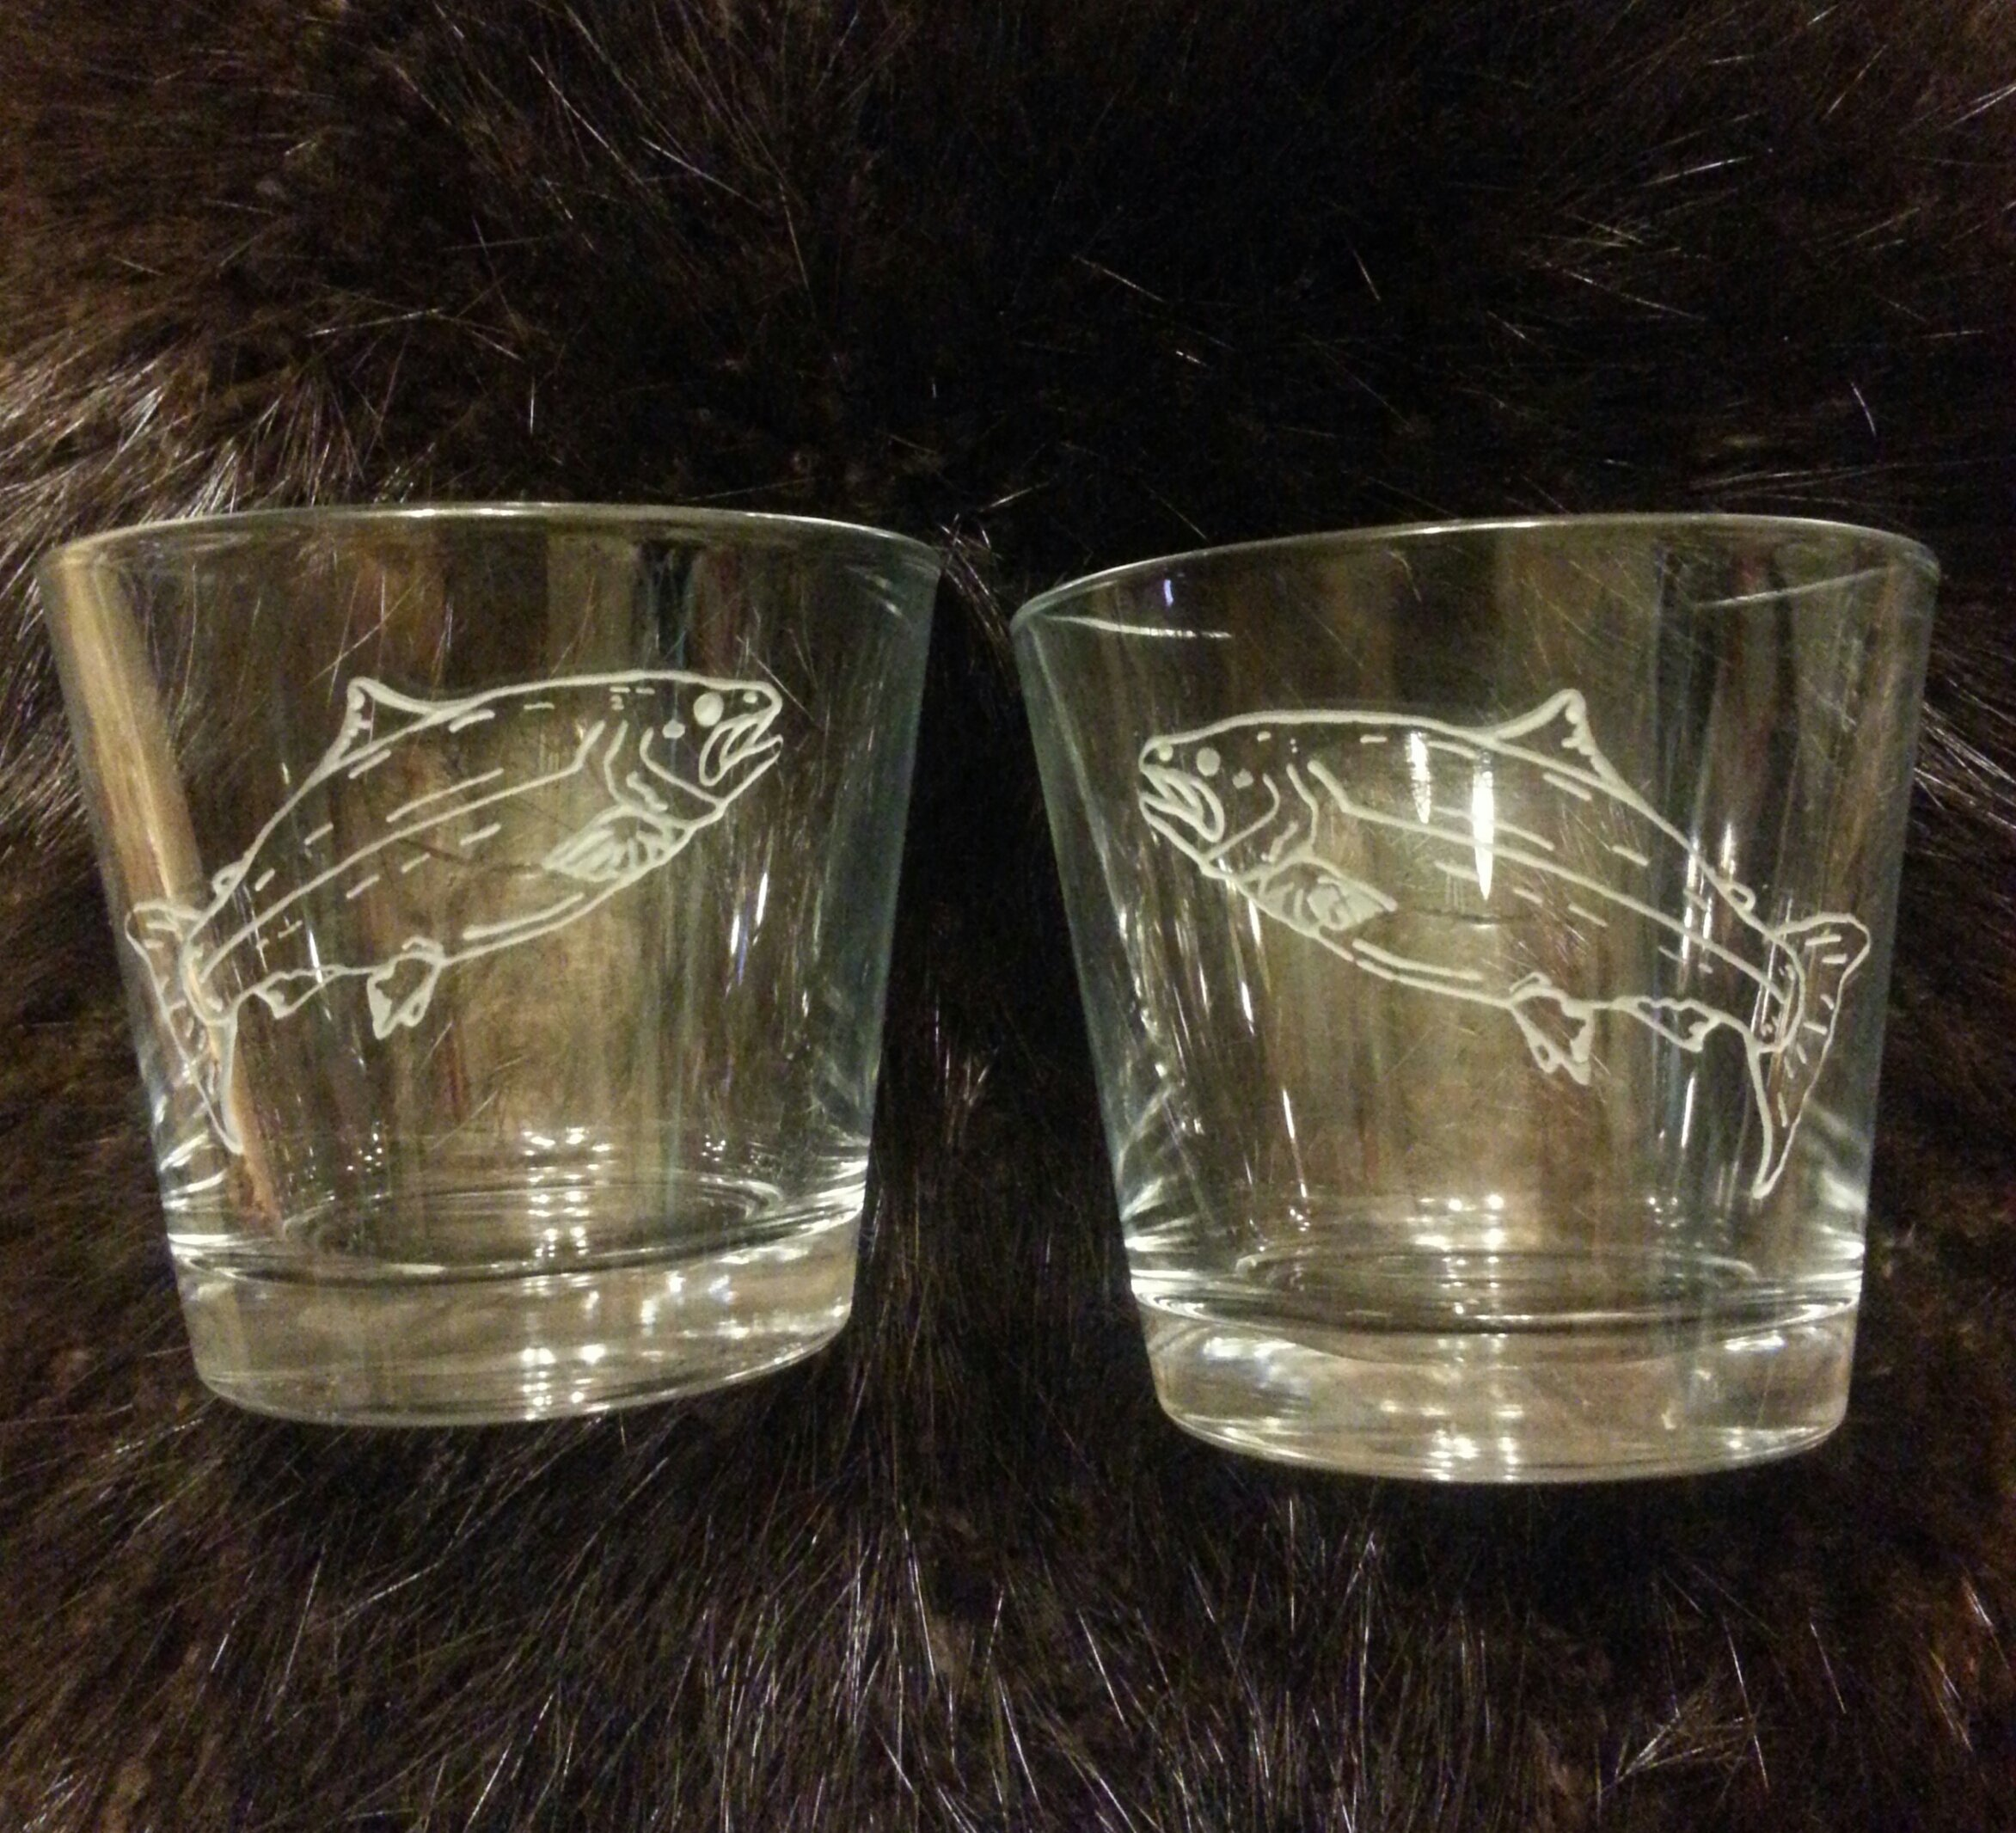 Salmon engraved old fashion glasses... $25.00 ea,  or $45 for 2...